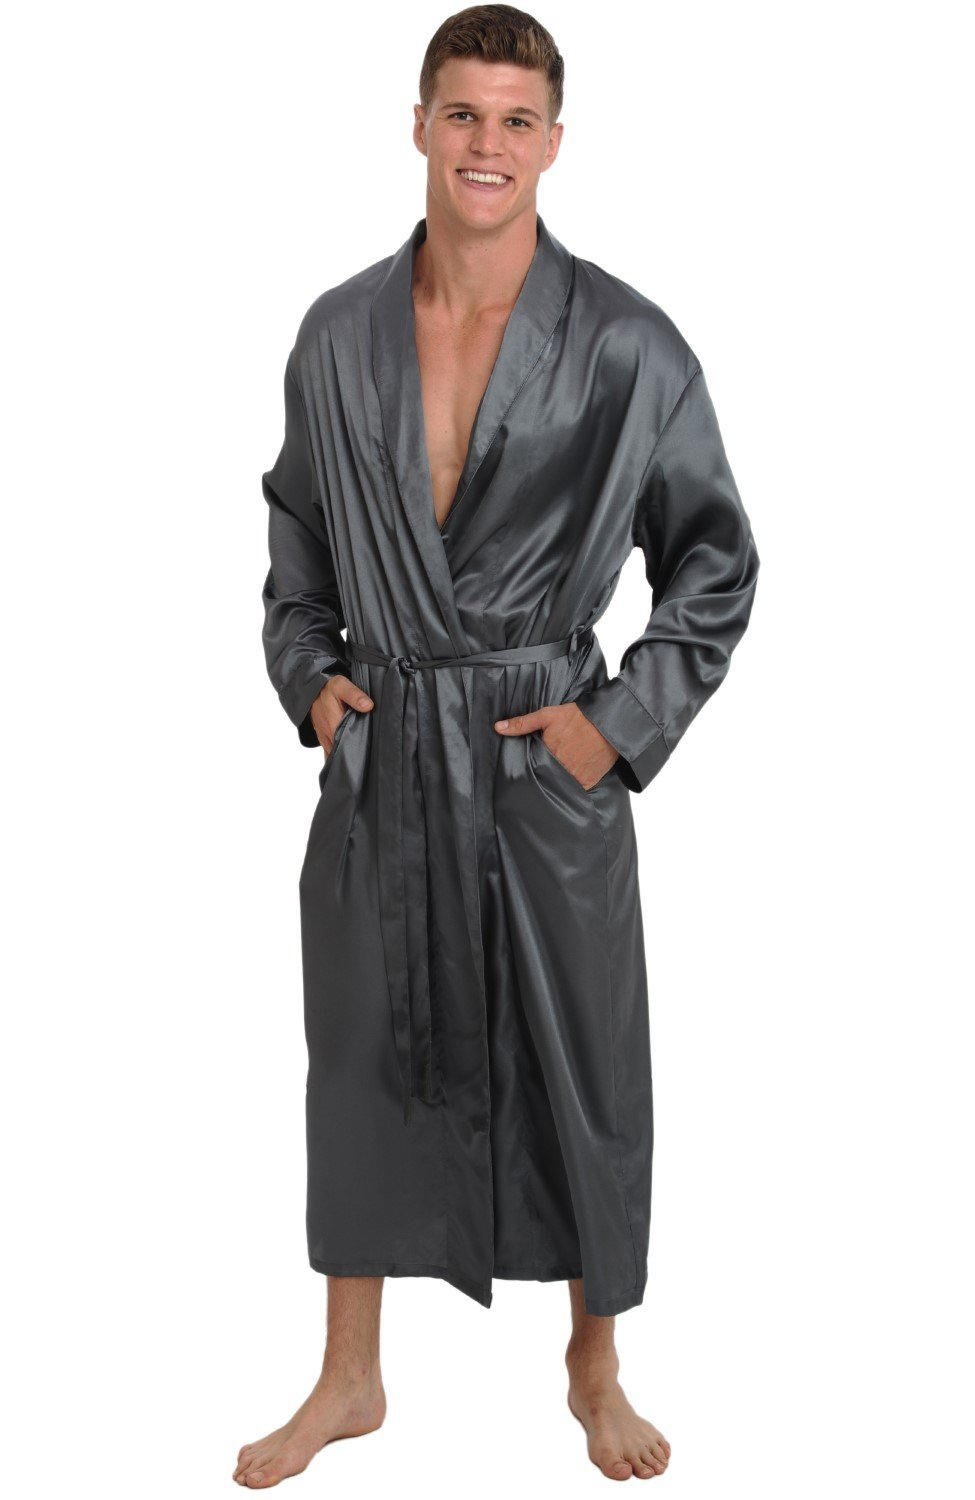 Alexander Del Rossa Mens Satin Robe, Long Lightweight Loungewear, 3XL Steel (A0720STL3X) by Alexander Del Rossa